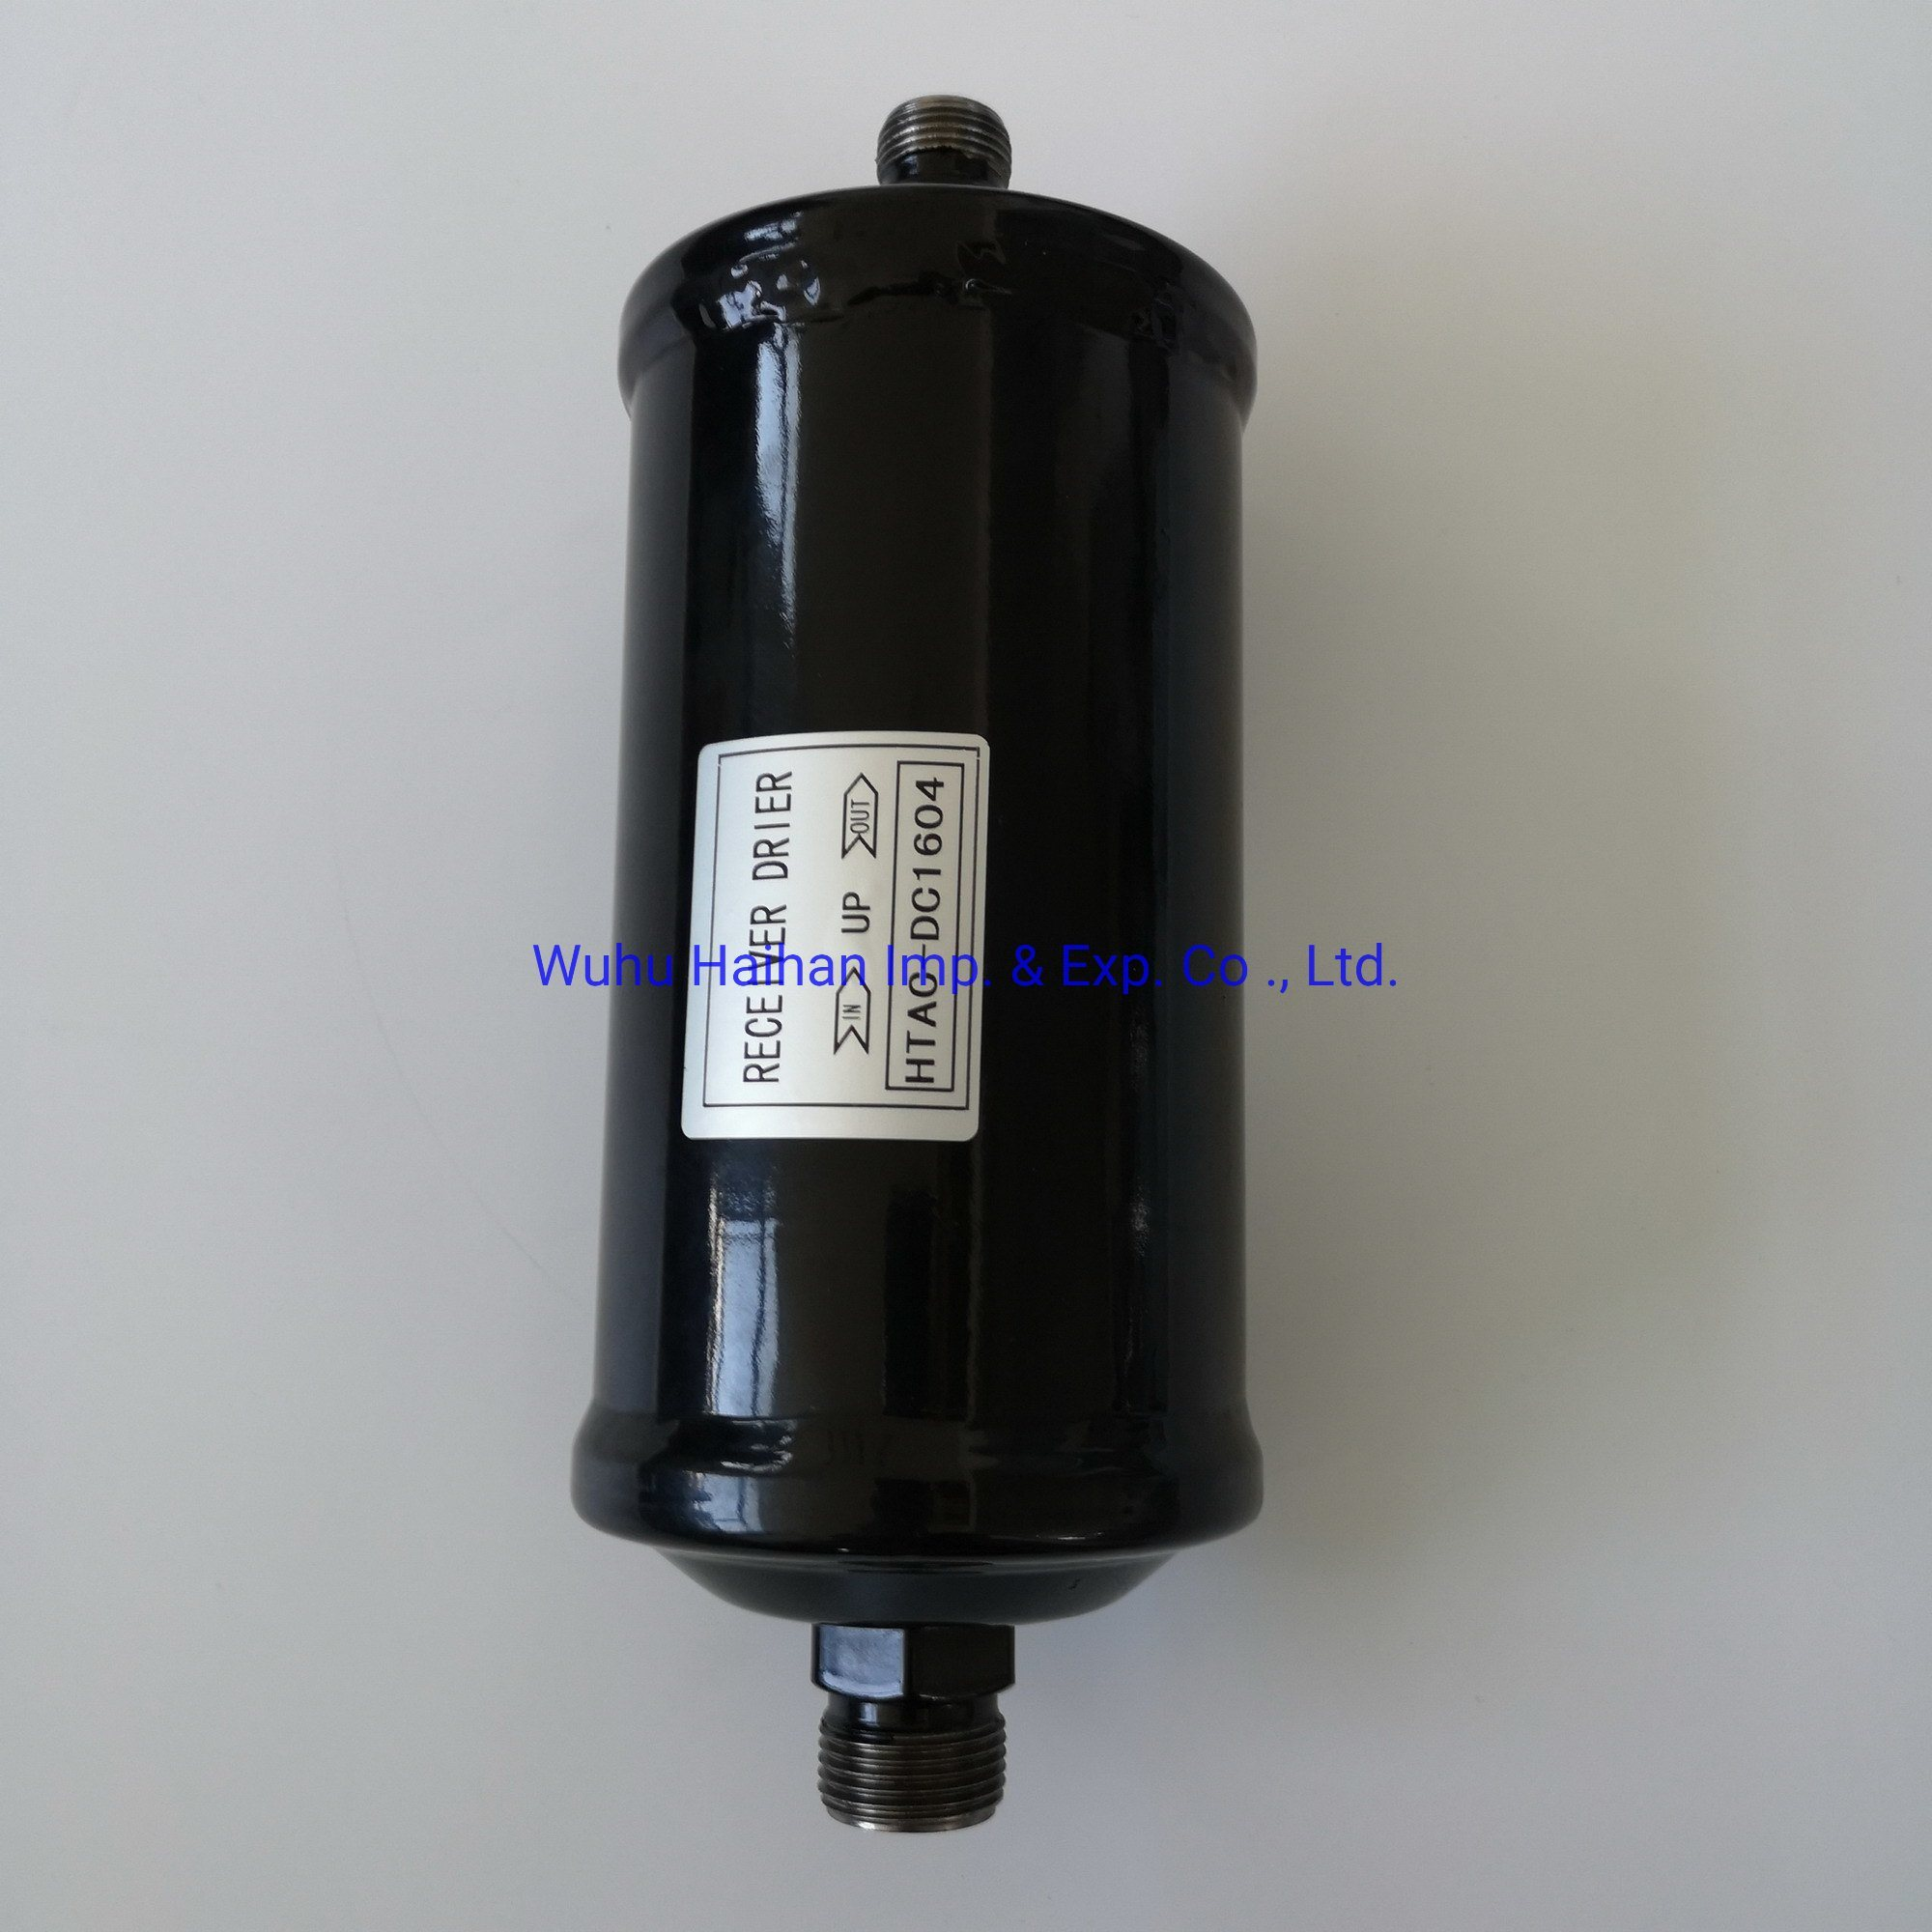 China Auto AC Parts Receiver Drier for Carrier 1400209000